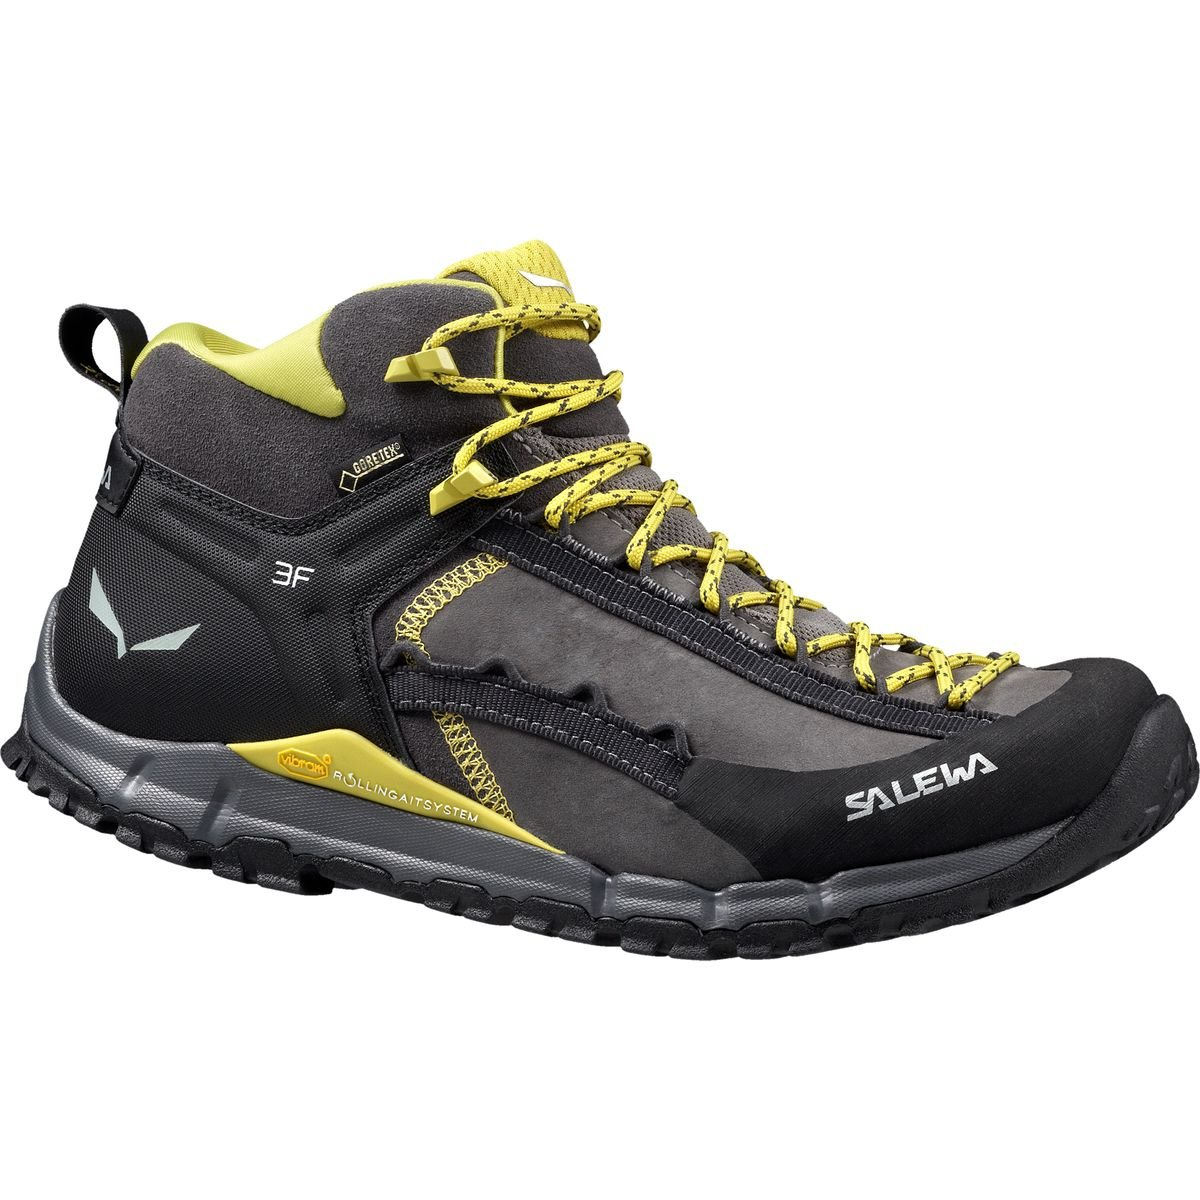 Salewa Hike Roller Mid GTX Speed Ascent Shoe, Pewter/Kamille, 10.5 M US